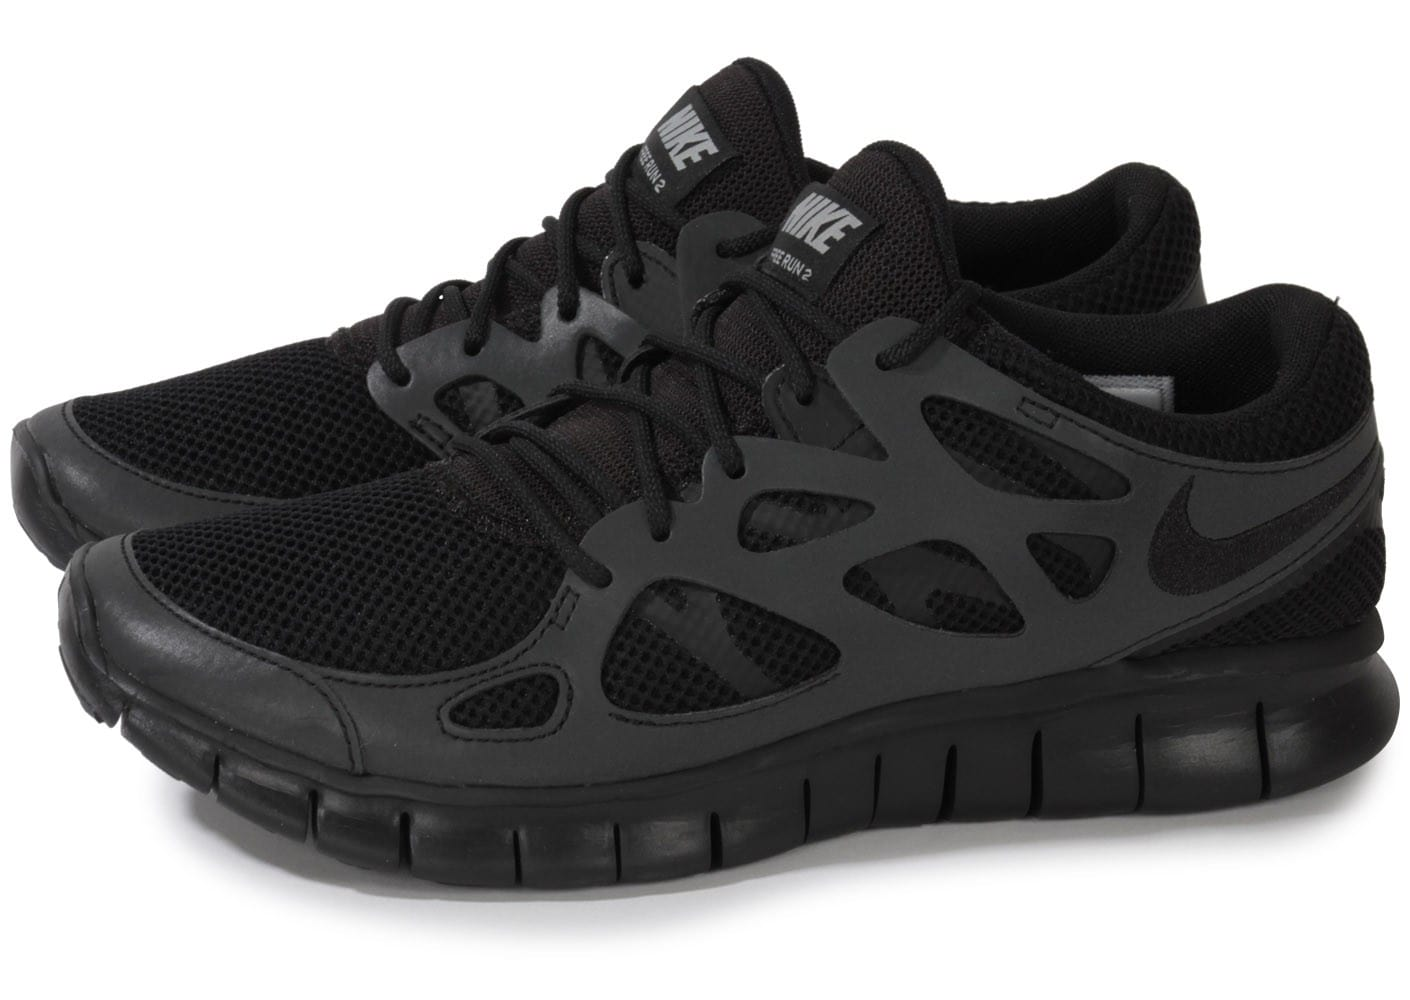 nike free run 2 noire chaussures homme chausport. Black Bedroom Furniture Sets. Home Design Ideas